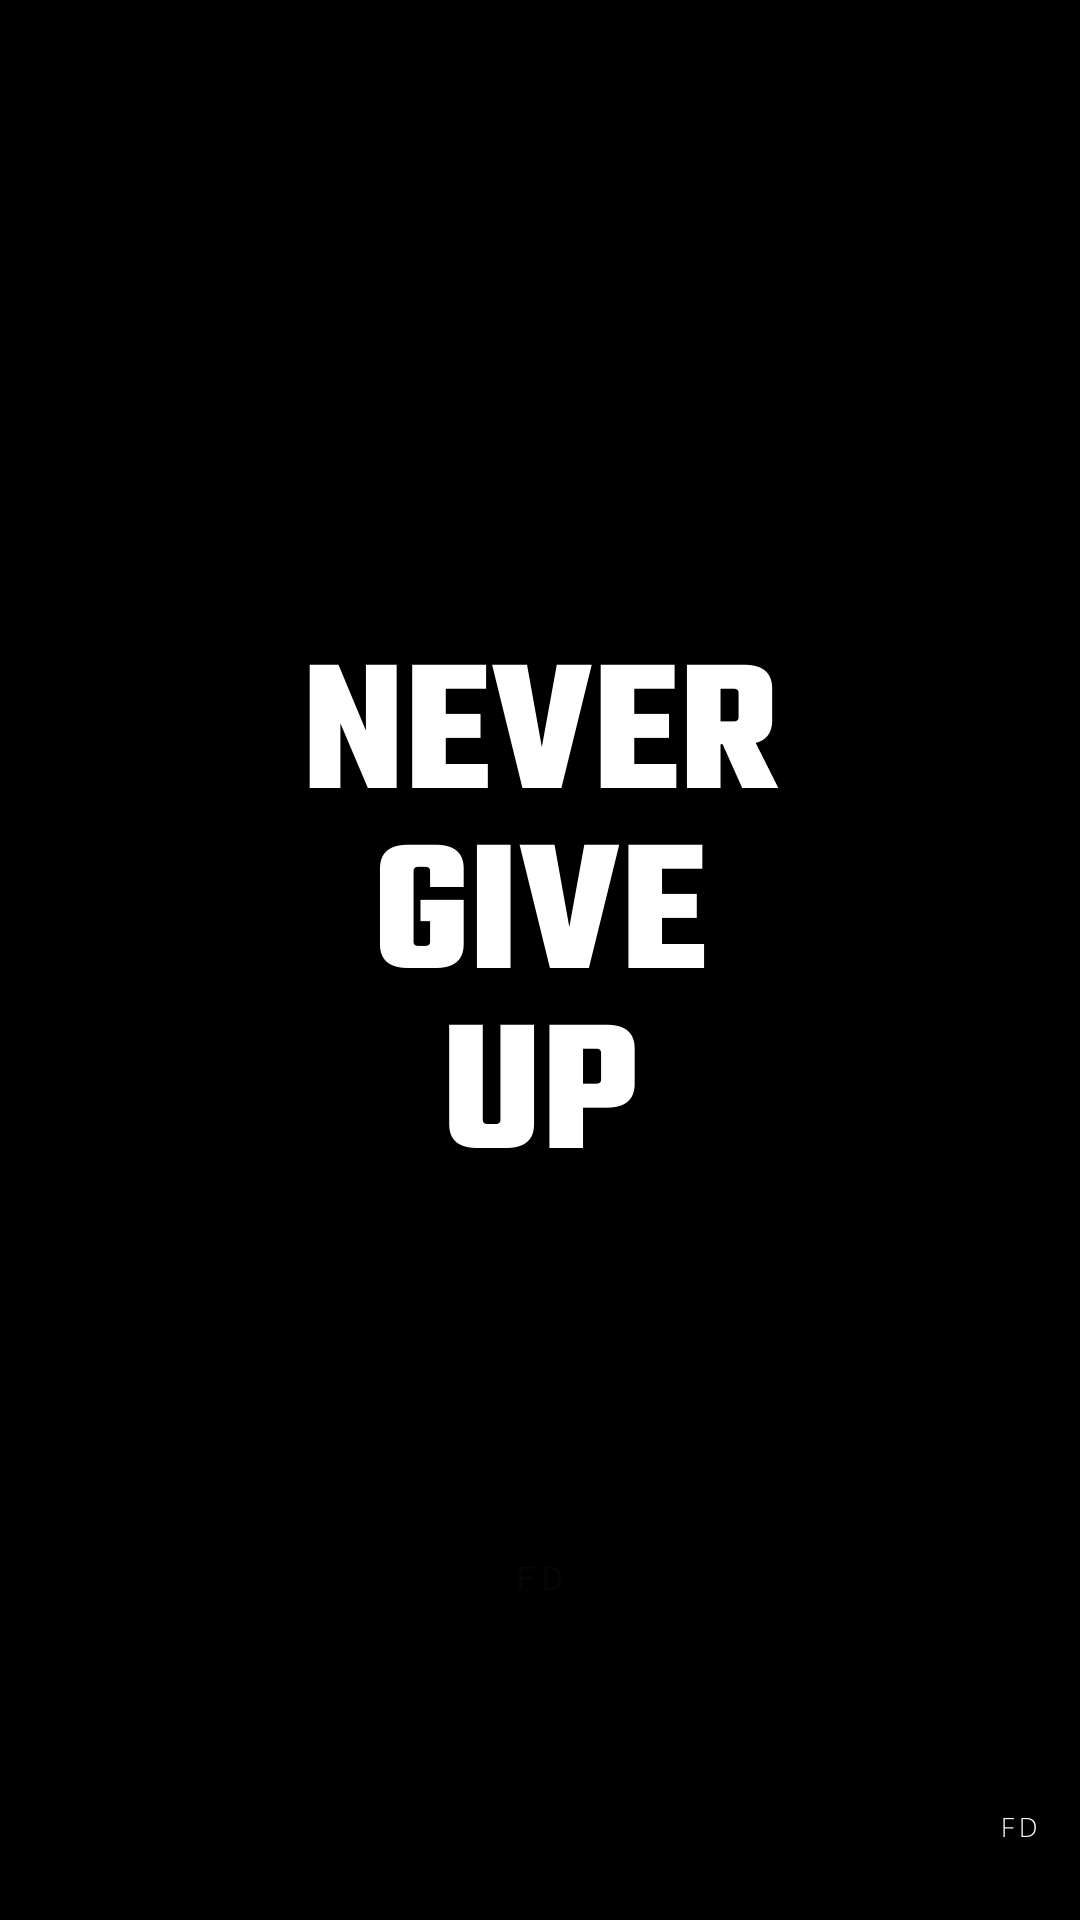 Best Black Background Quotes & Wallpaper - NEVER GIVE UP